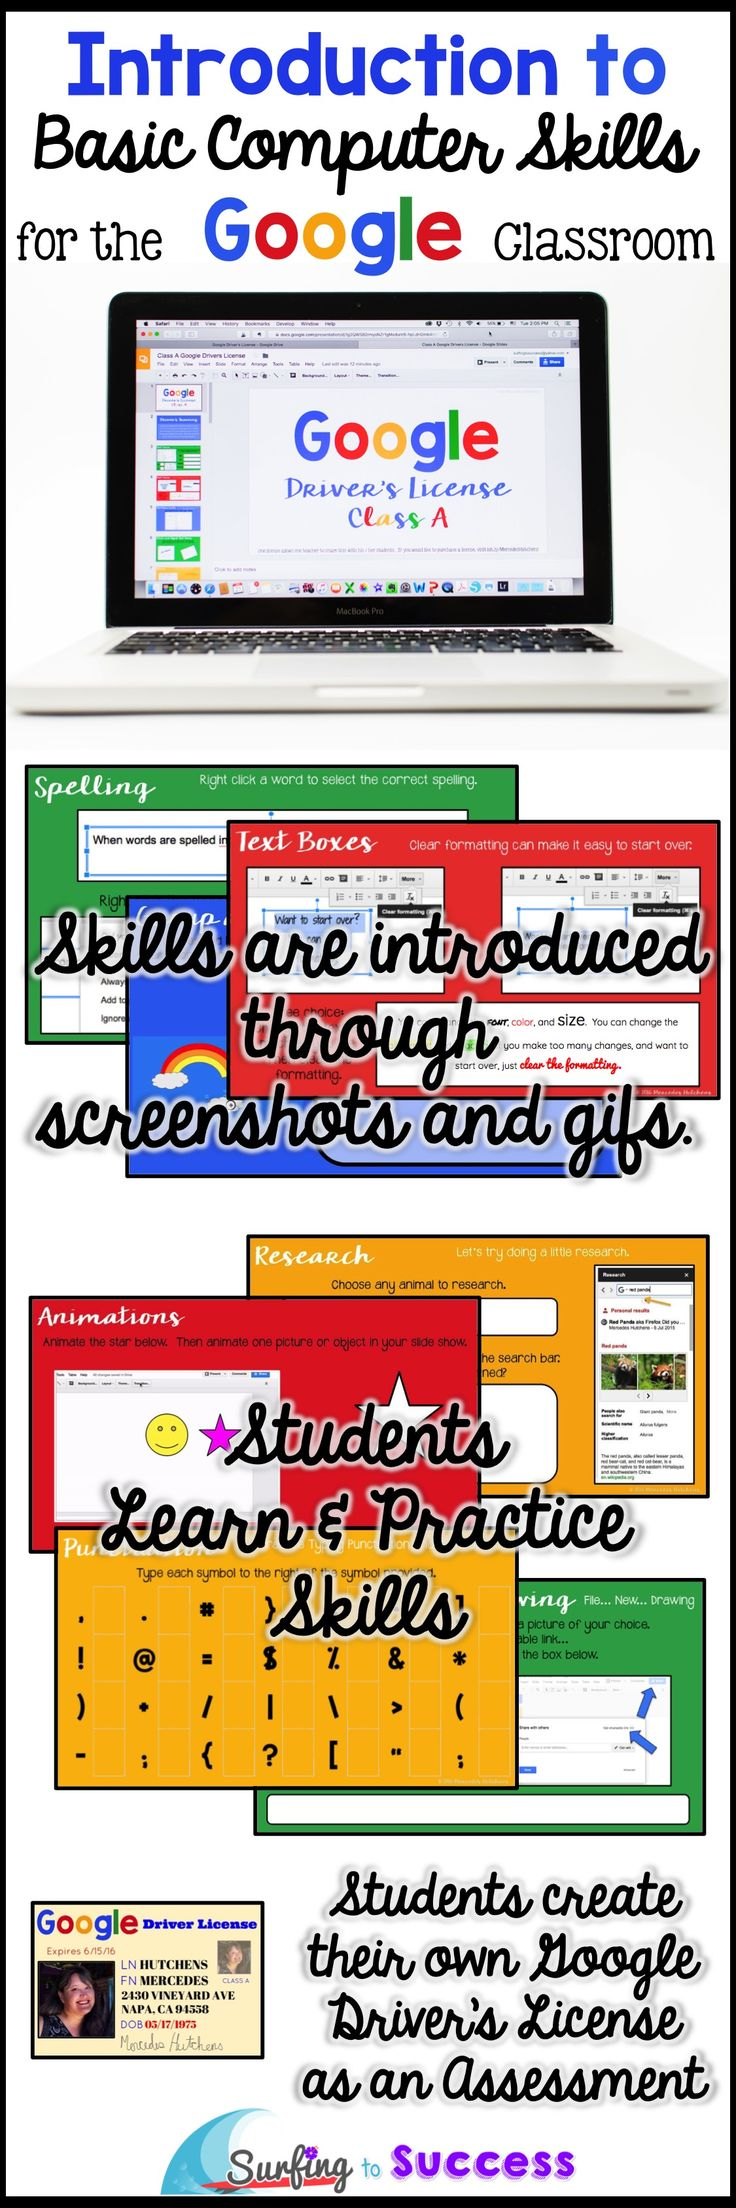 Wondering how to start using Google in your classroom? Teach your students how to use Google Slides and so much more. Help your students gain the background skills they need to learn and complete online assignments. All you need are free Google student accounts.